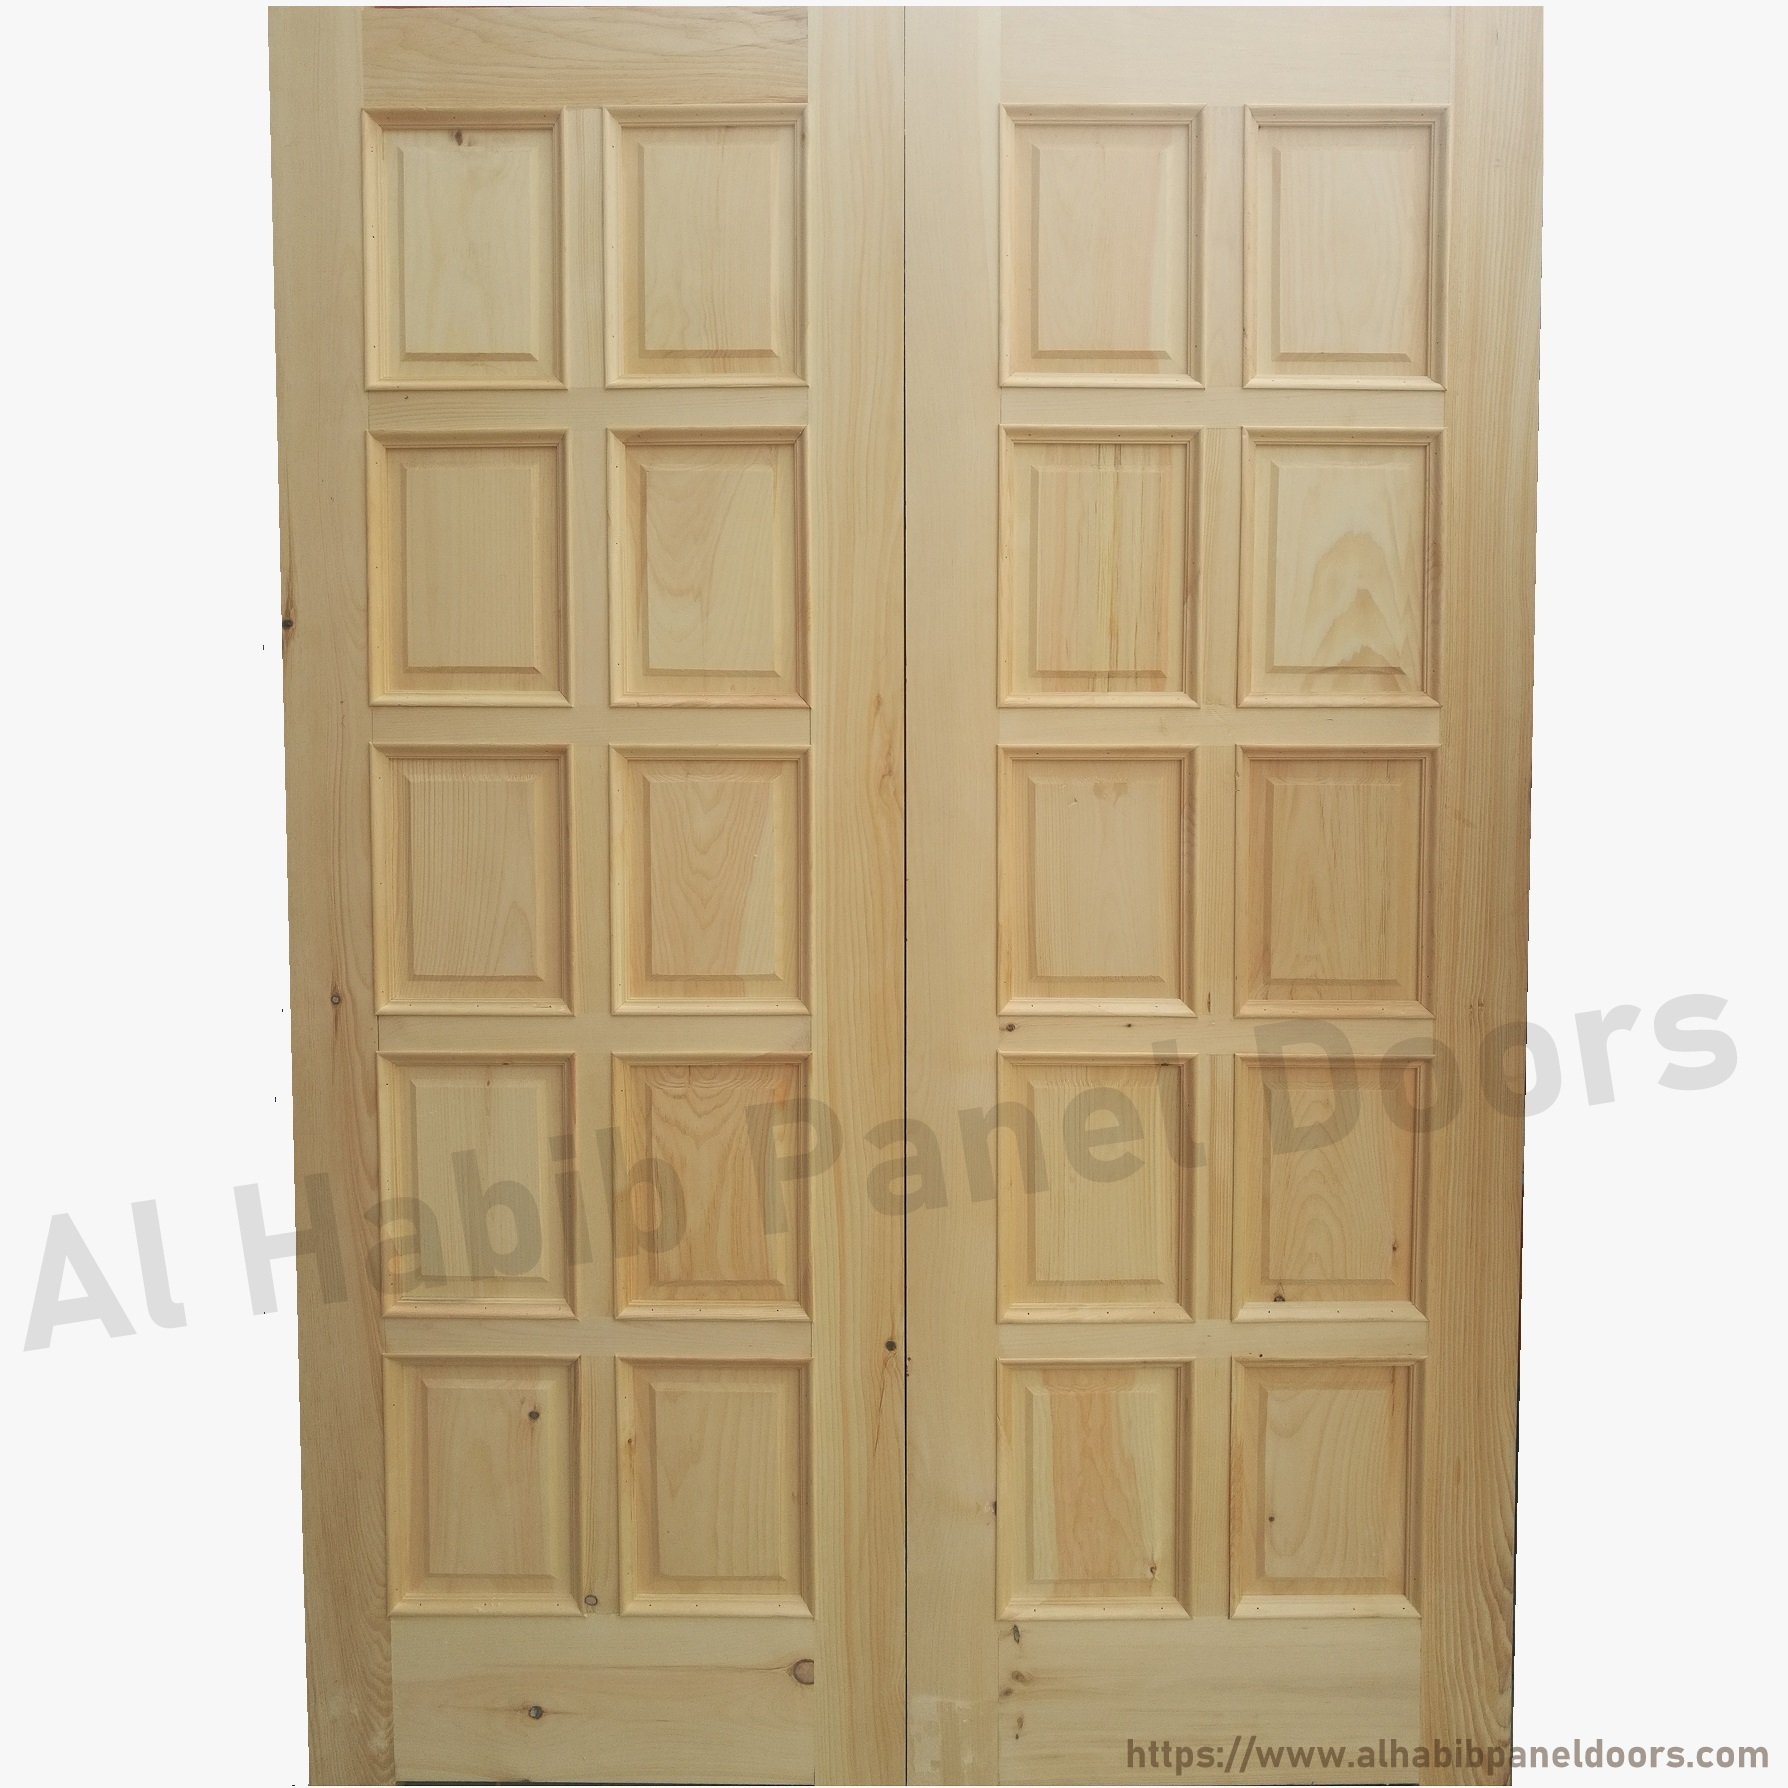 Diyar solid wood main double door hpd412 main doors al for Main two door designs